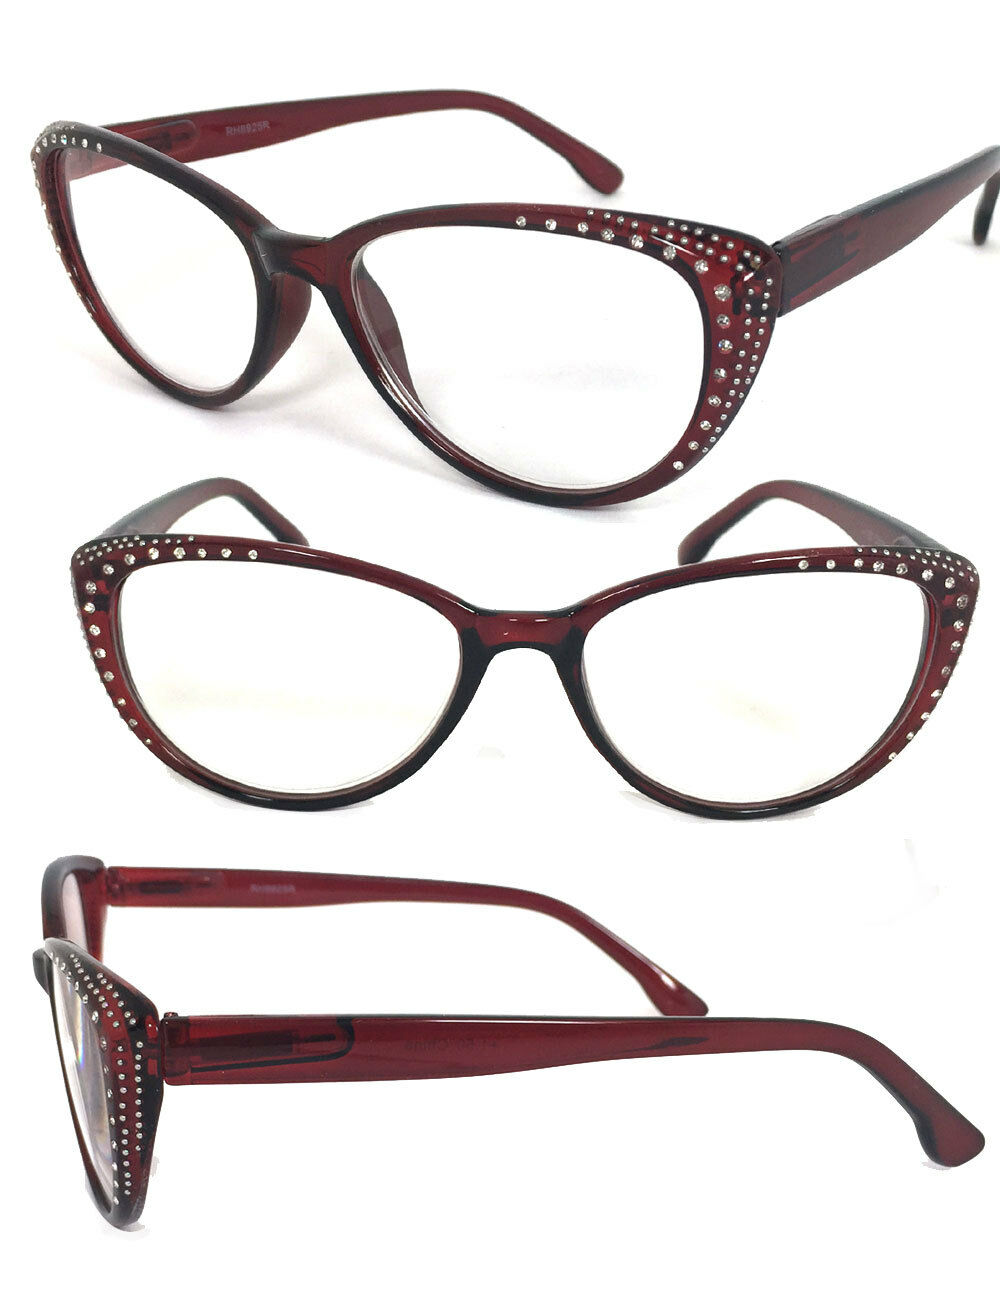 8b22c6f0e65 Details about Rhinestone Cat Eye Sexy Vintage Style Clear Lens Reading  Glasses Red Frame